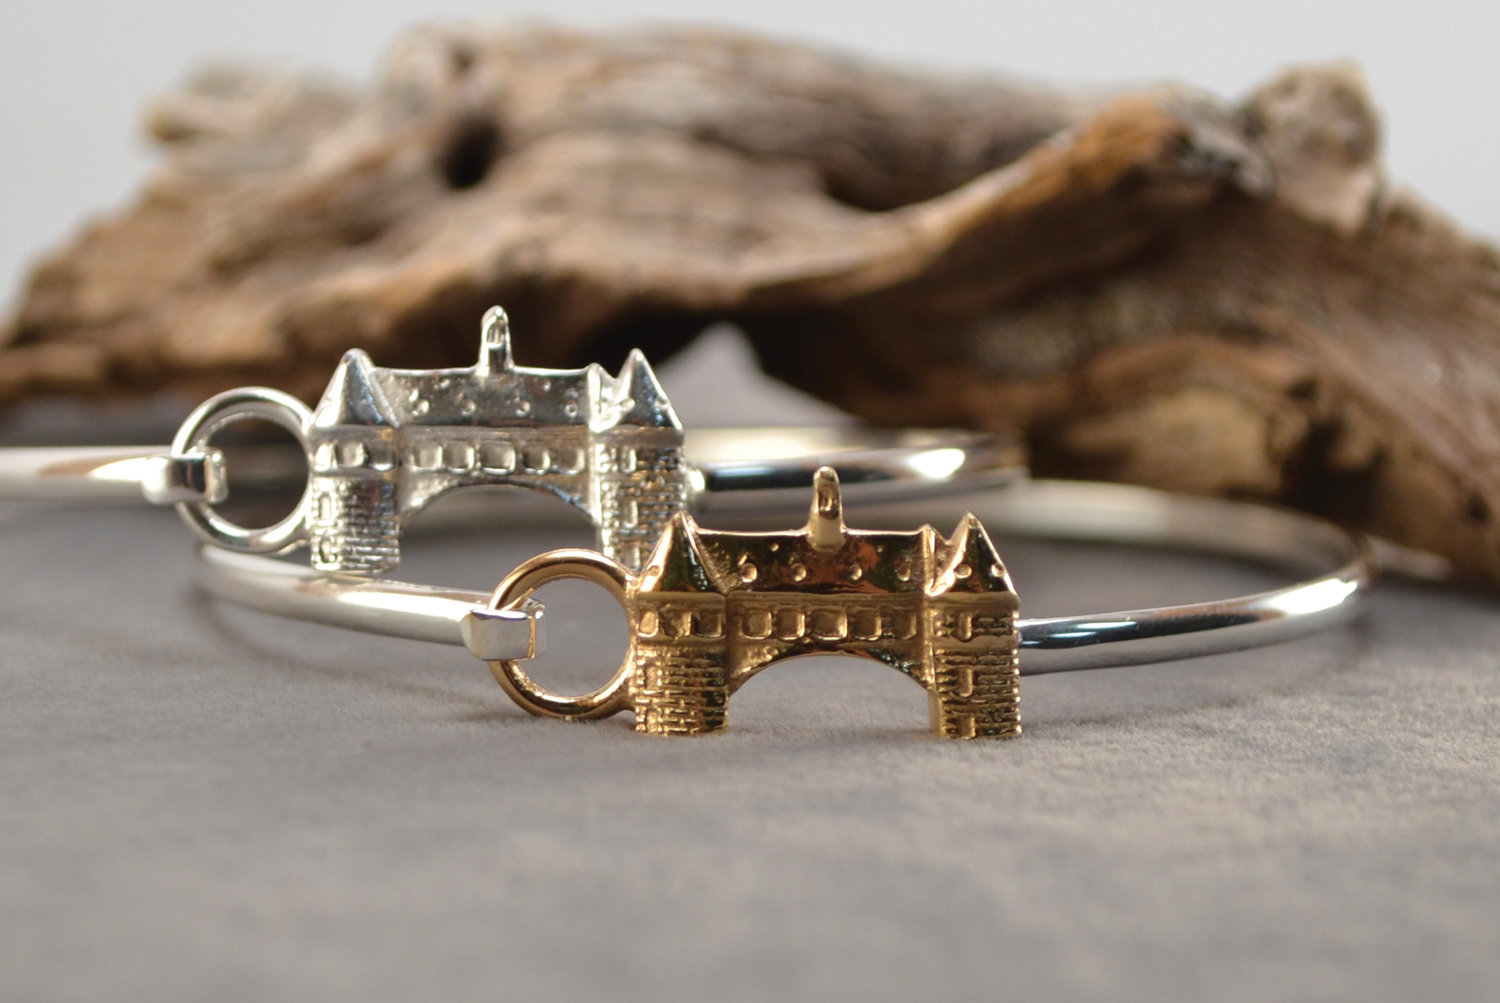 Stylish, artisan, and unique finds (like this Towers bracelet) are aplenty at the The Purple Cow.